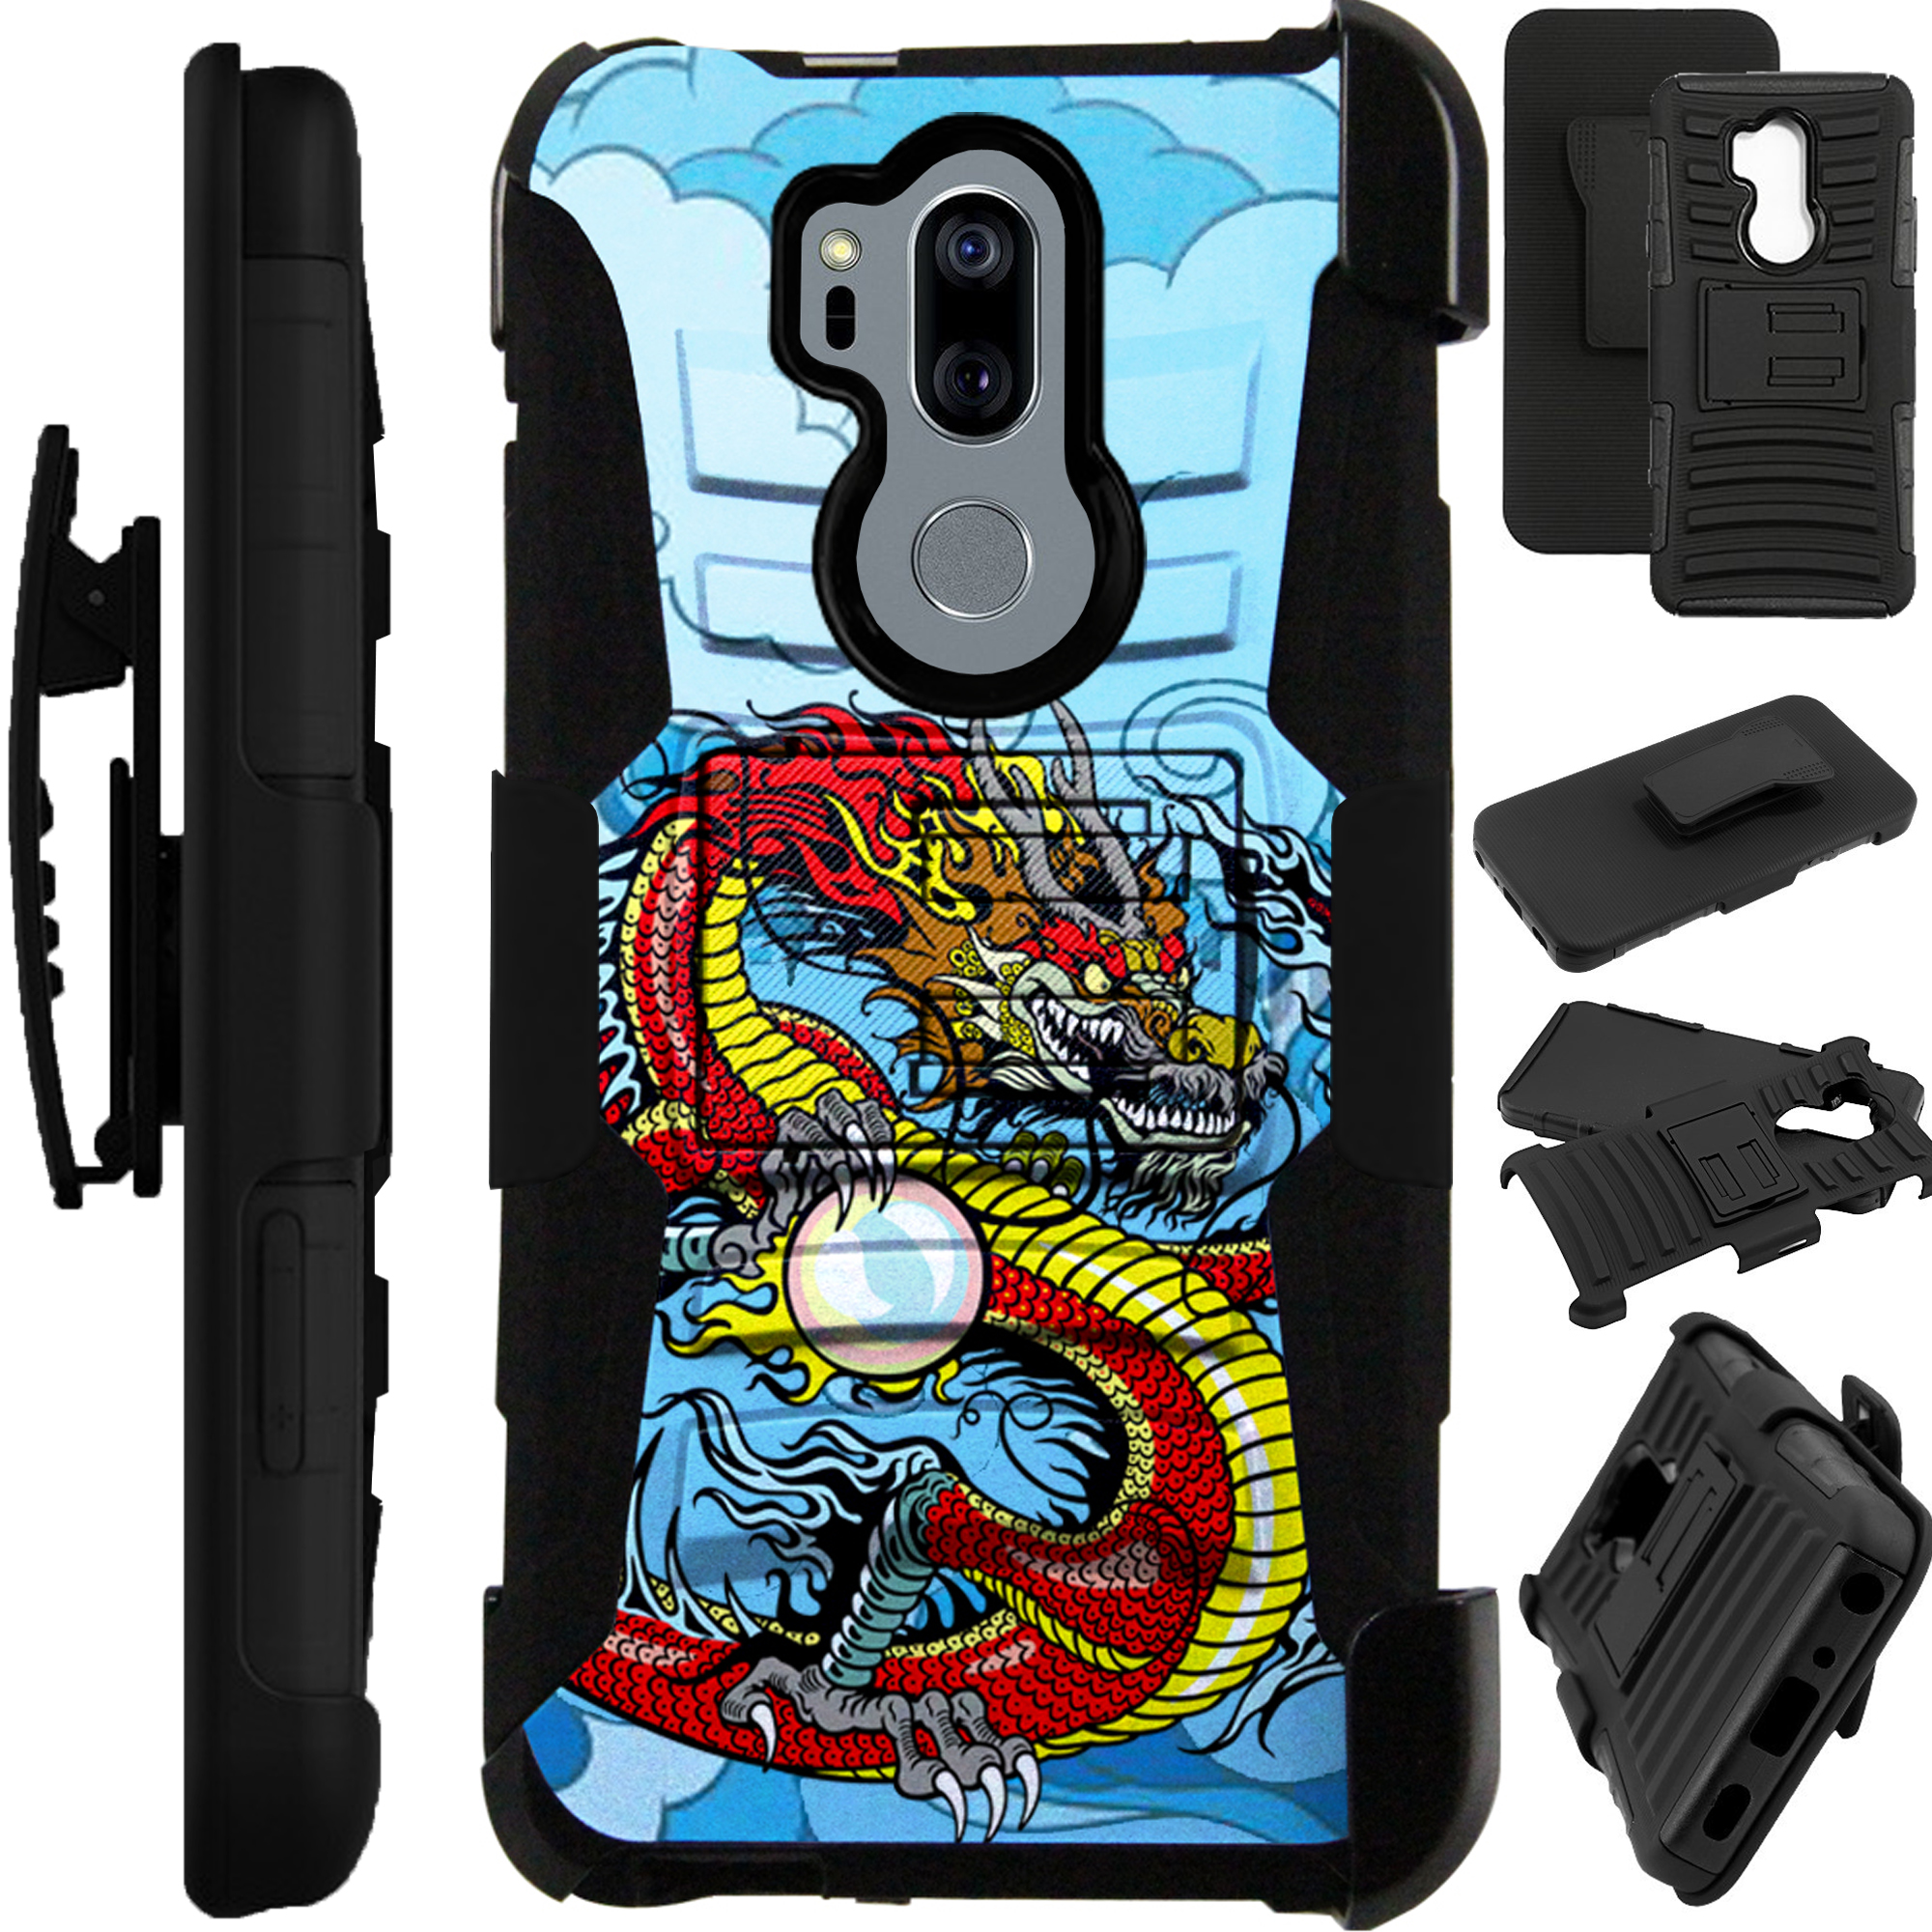 For LG G7 ThinQ | LG G7 Case Armor Hybrid Silicone Cover Stand LuxGuard Holster (Red Dragon)